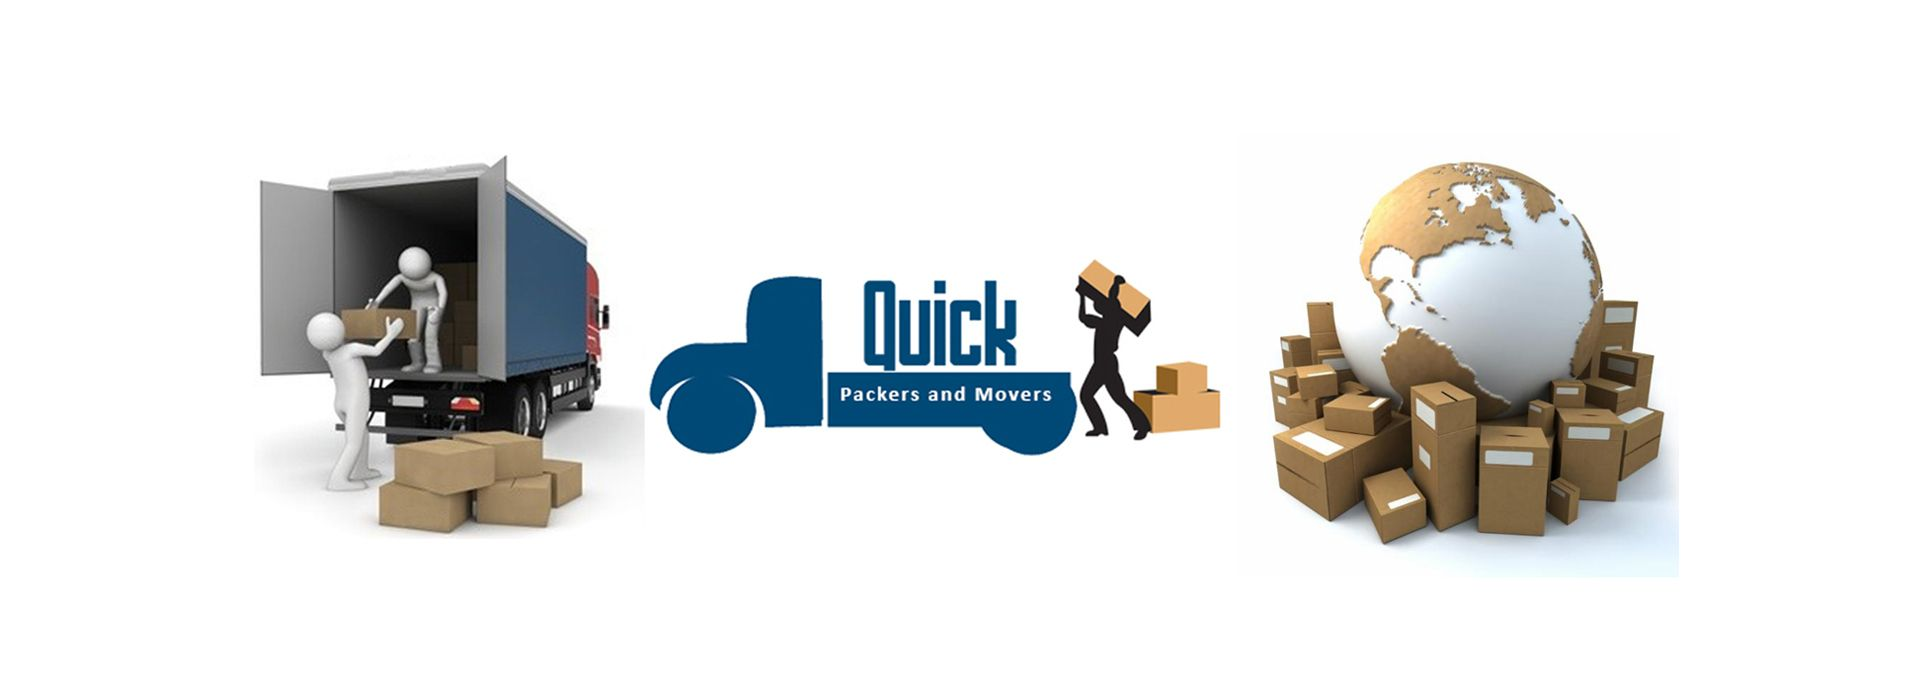 Quick Packers and Movers Services Delhi